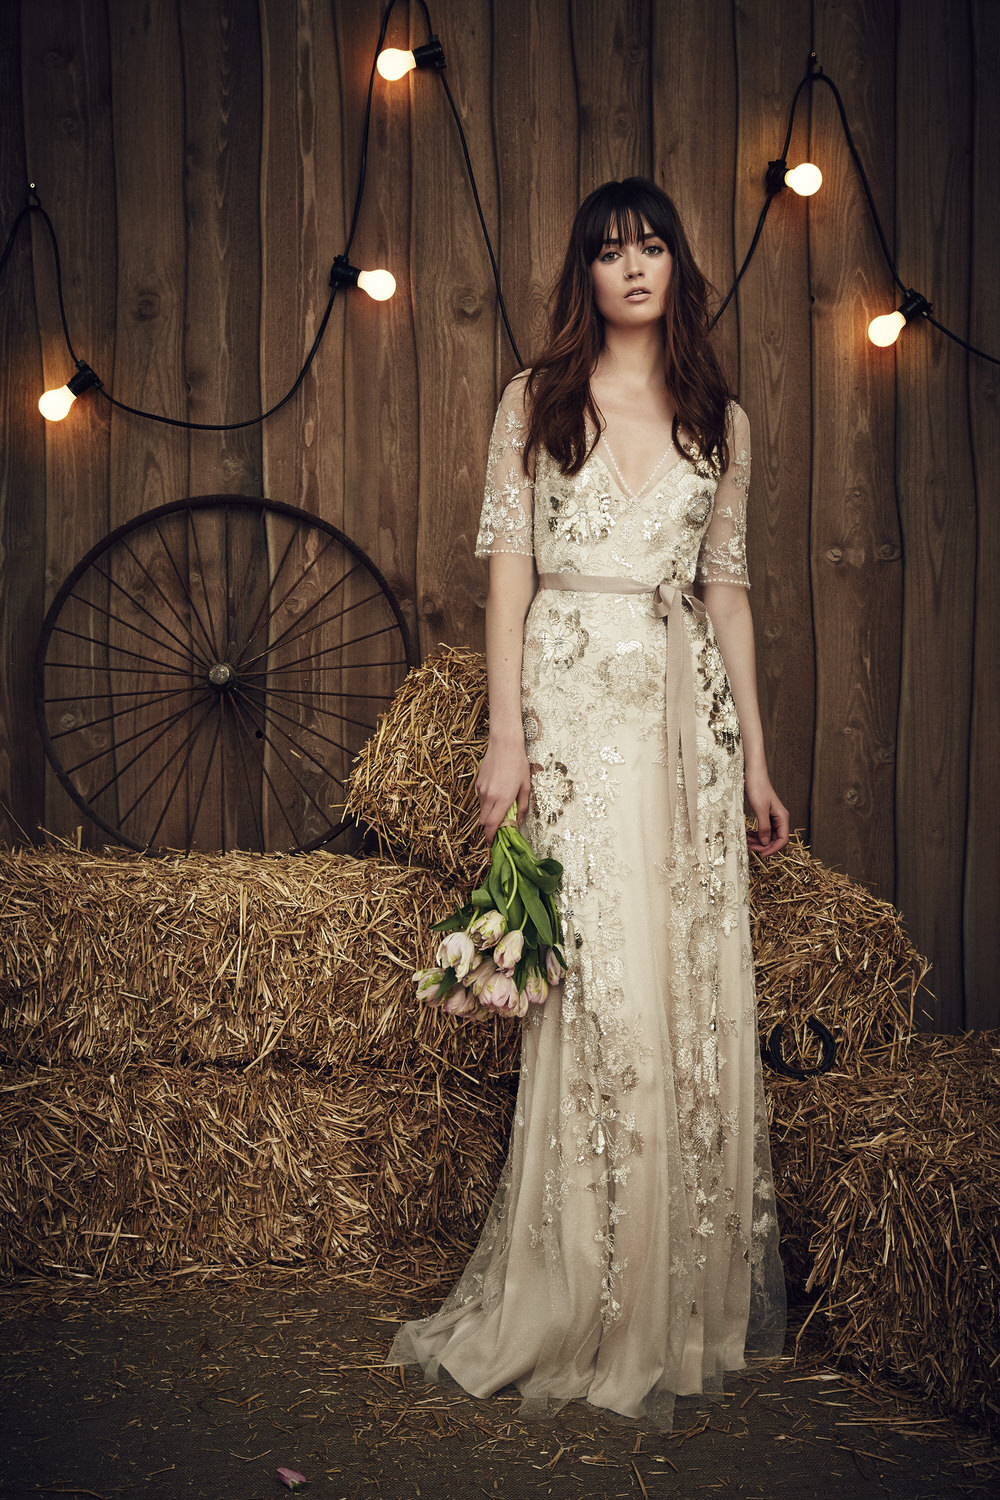 ab14b36f9d5 2017 Bridal Collection from Jenny Packham - ROCK MY WEDDING